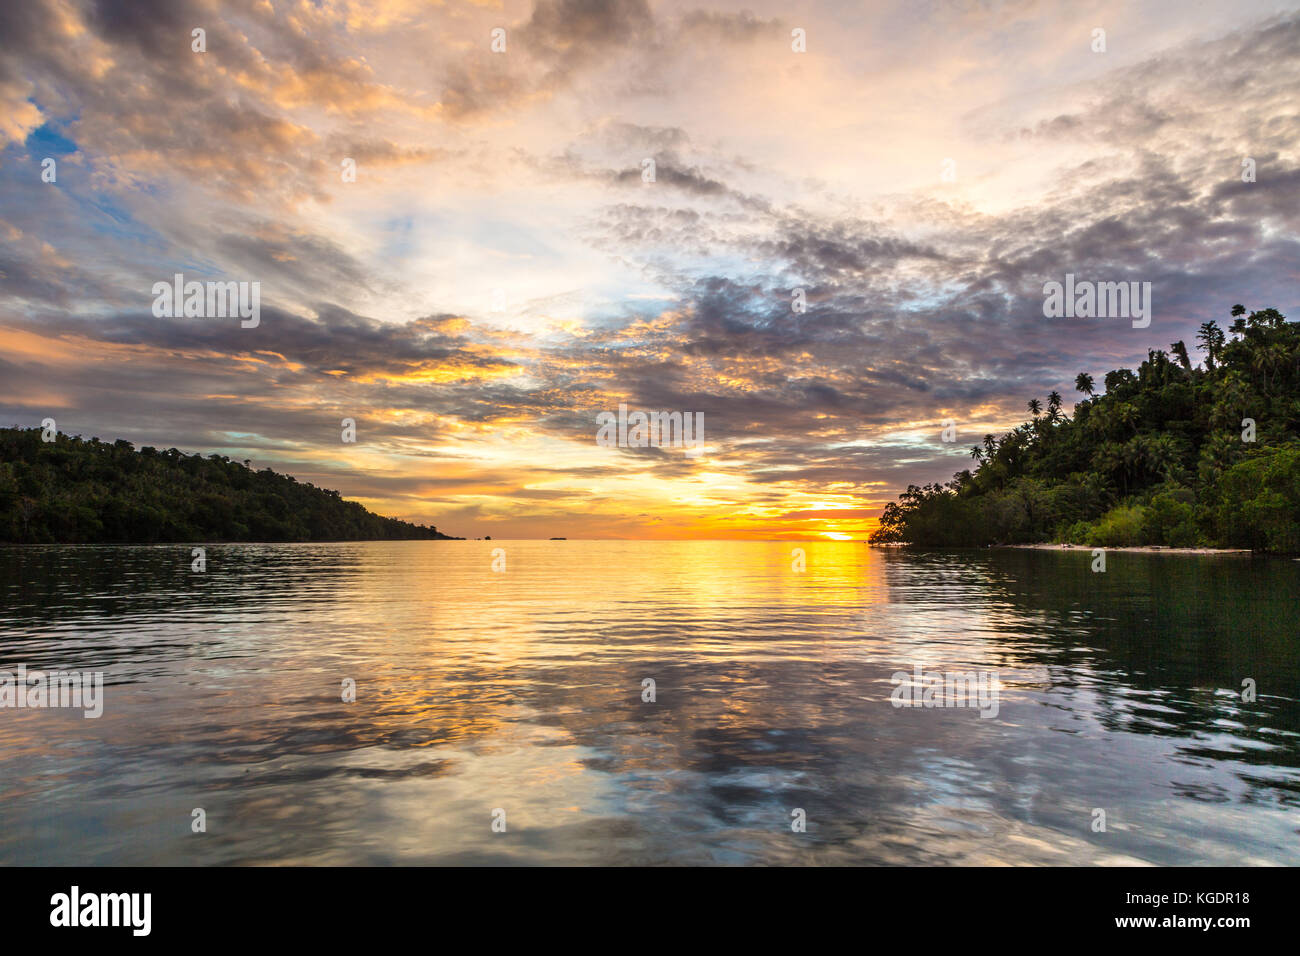 Stunning sunset in the Togian (or Togean) islands in Sulawesi, a remote corner of Indonesia still untouched by pollution - Stock Image